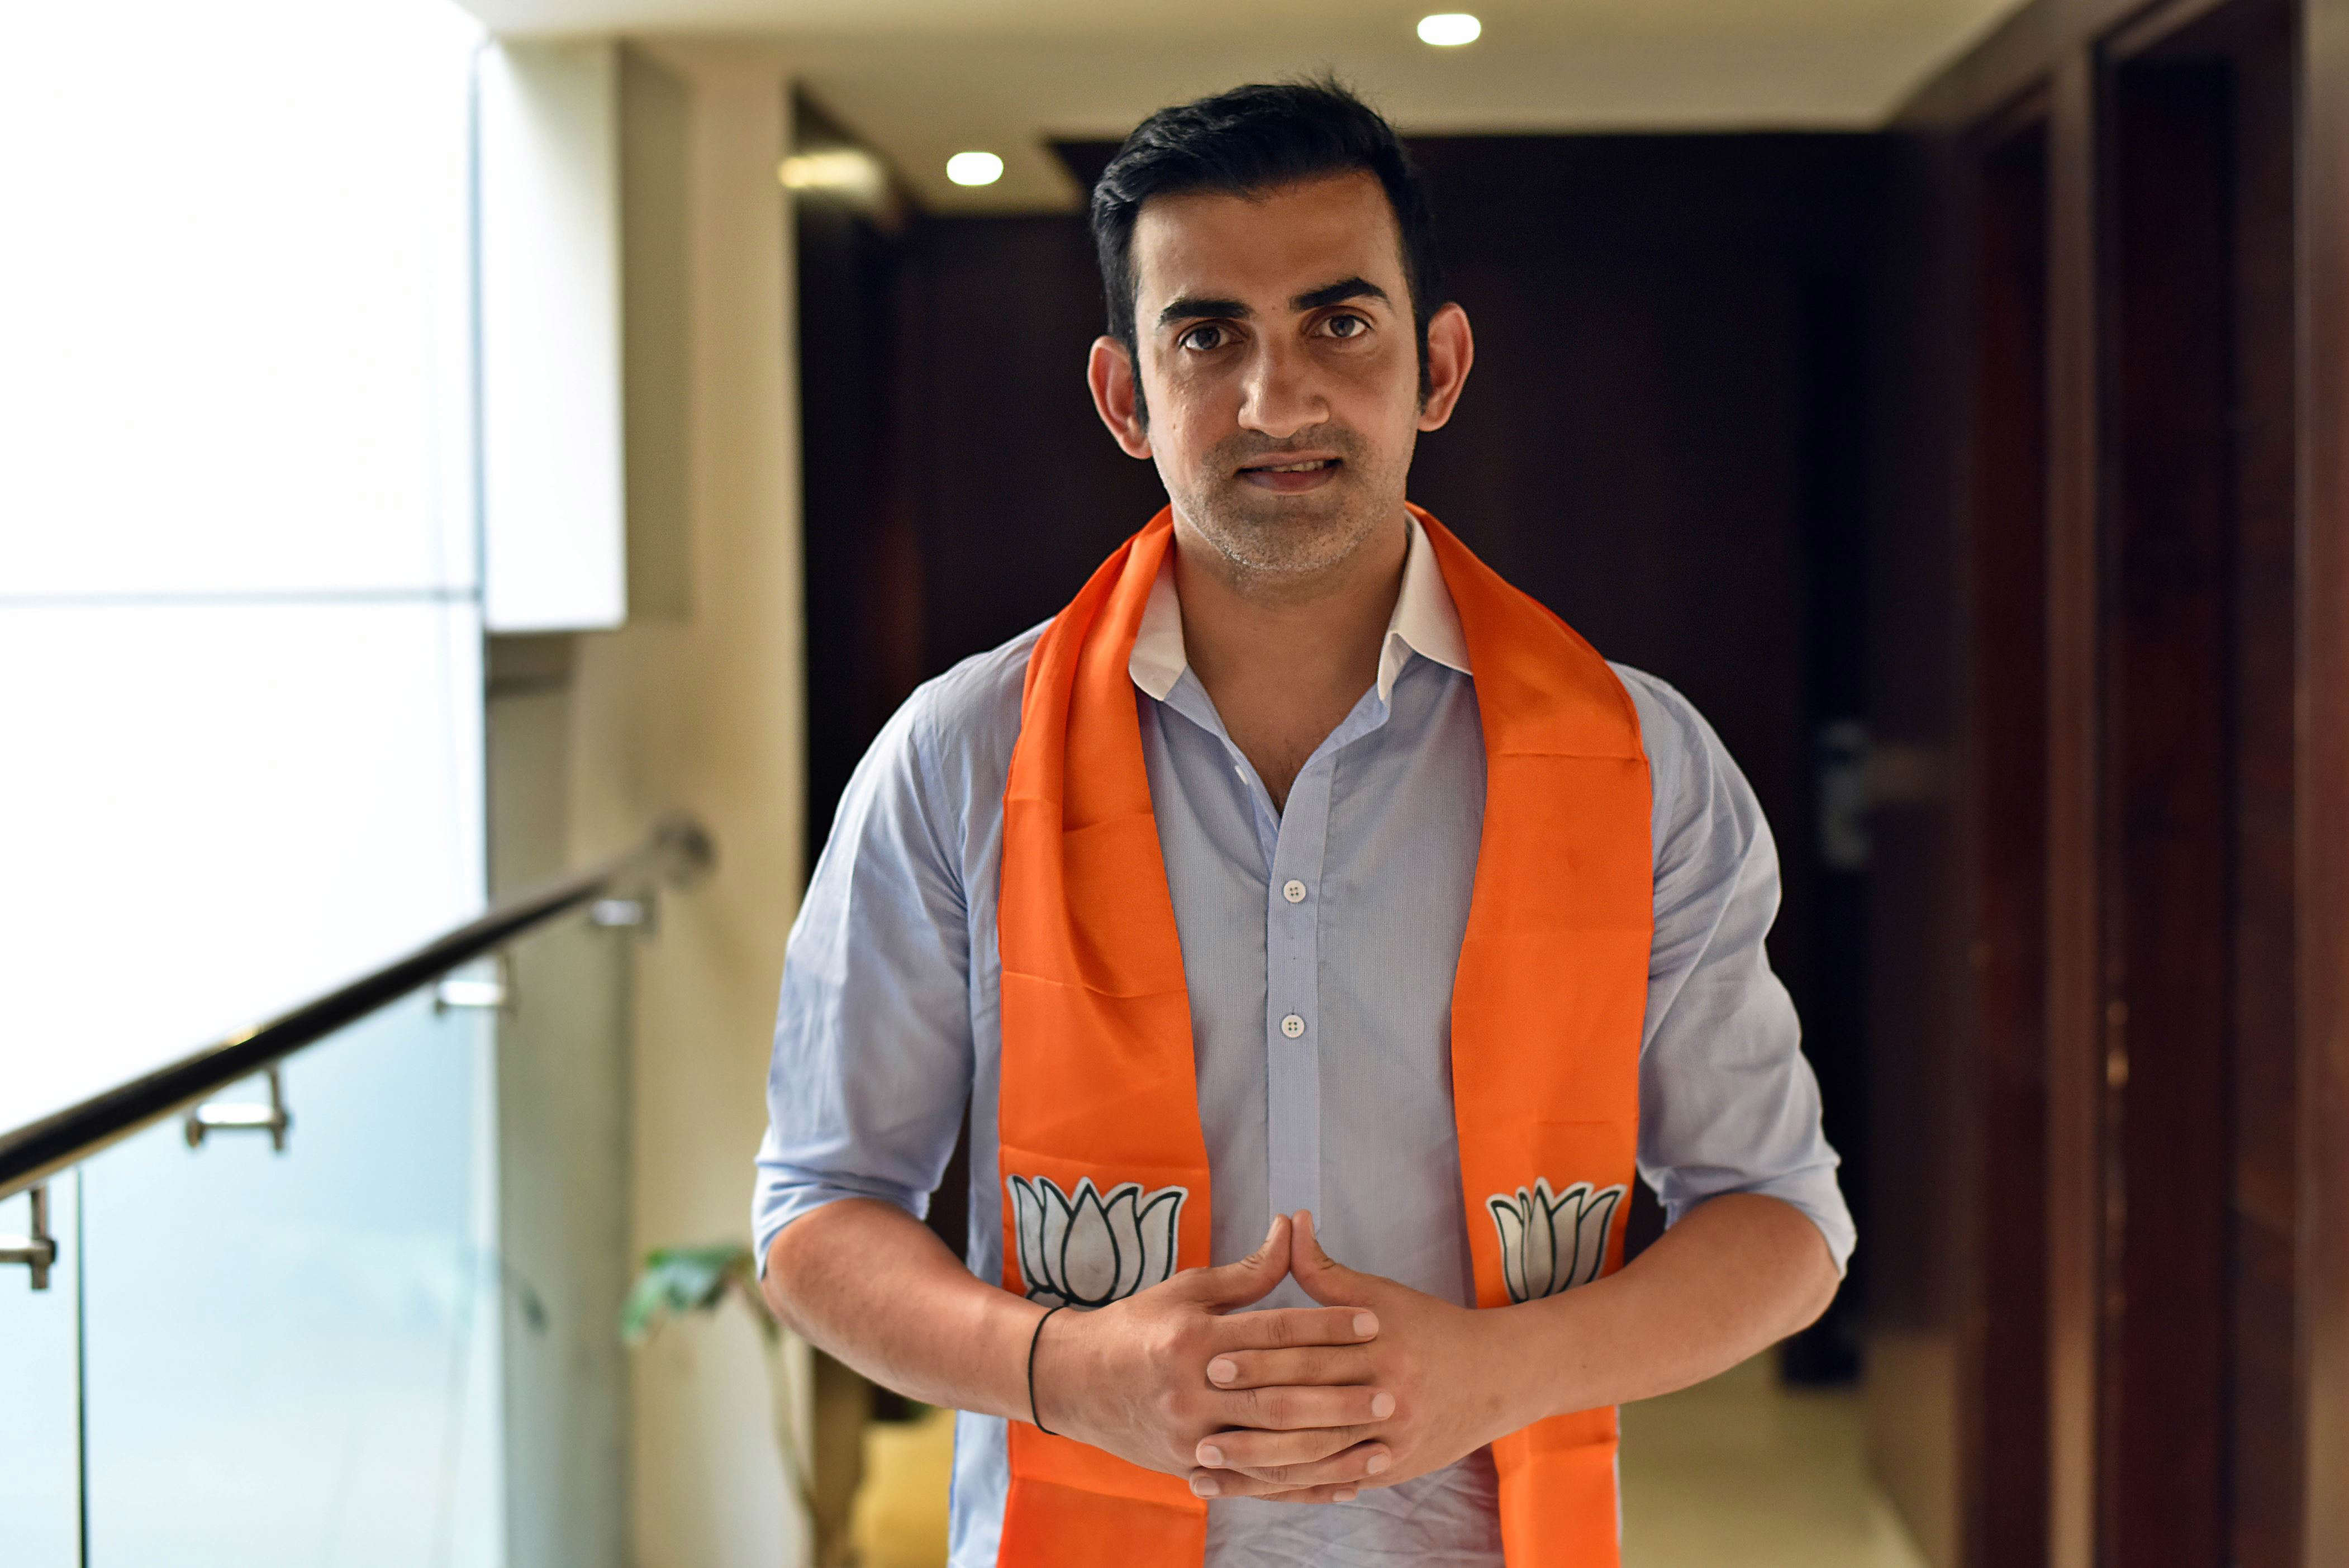 Slide 2 of 31: NEW DELHI, INDIA - APRIL 24: (EDITORS NOTE: This is an exclusive image of Hindustan Times) Gautam Gambhir, Bharatiya Janata Party (BJP) candidate from East Delhi, poses during an exclusive interview with Hindustan Times, on April 24, 2019 in New Delhi, India. (Photo by Amal KS/Hindustan Times via Getty Images)